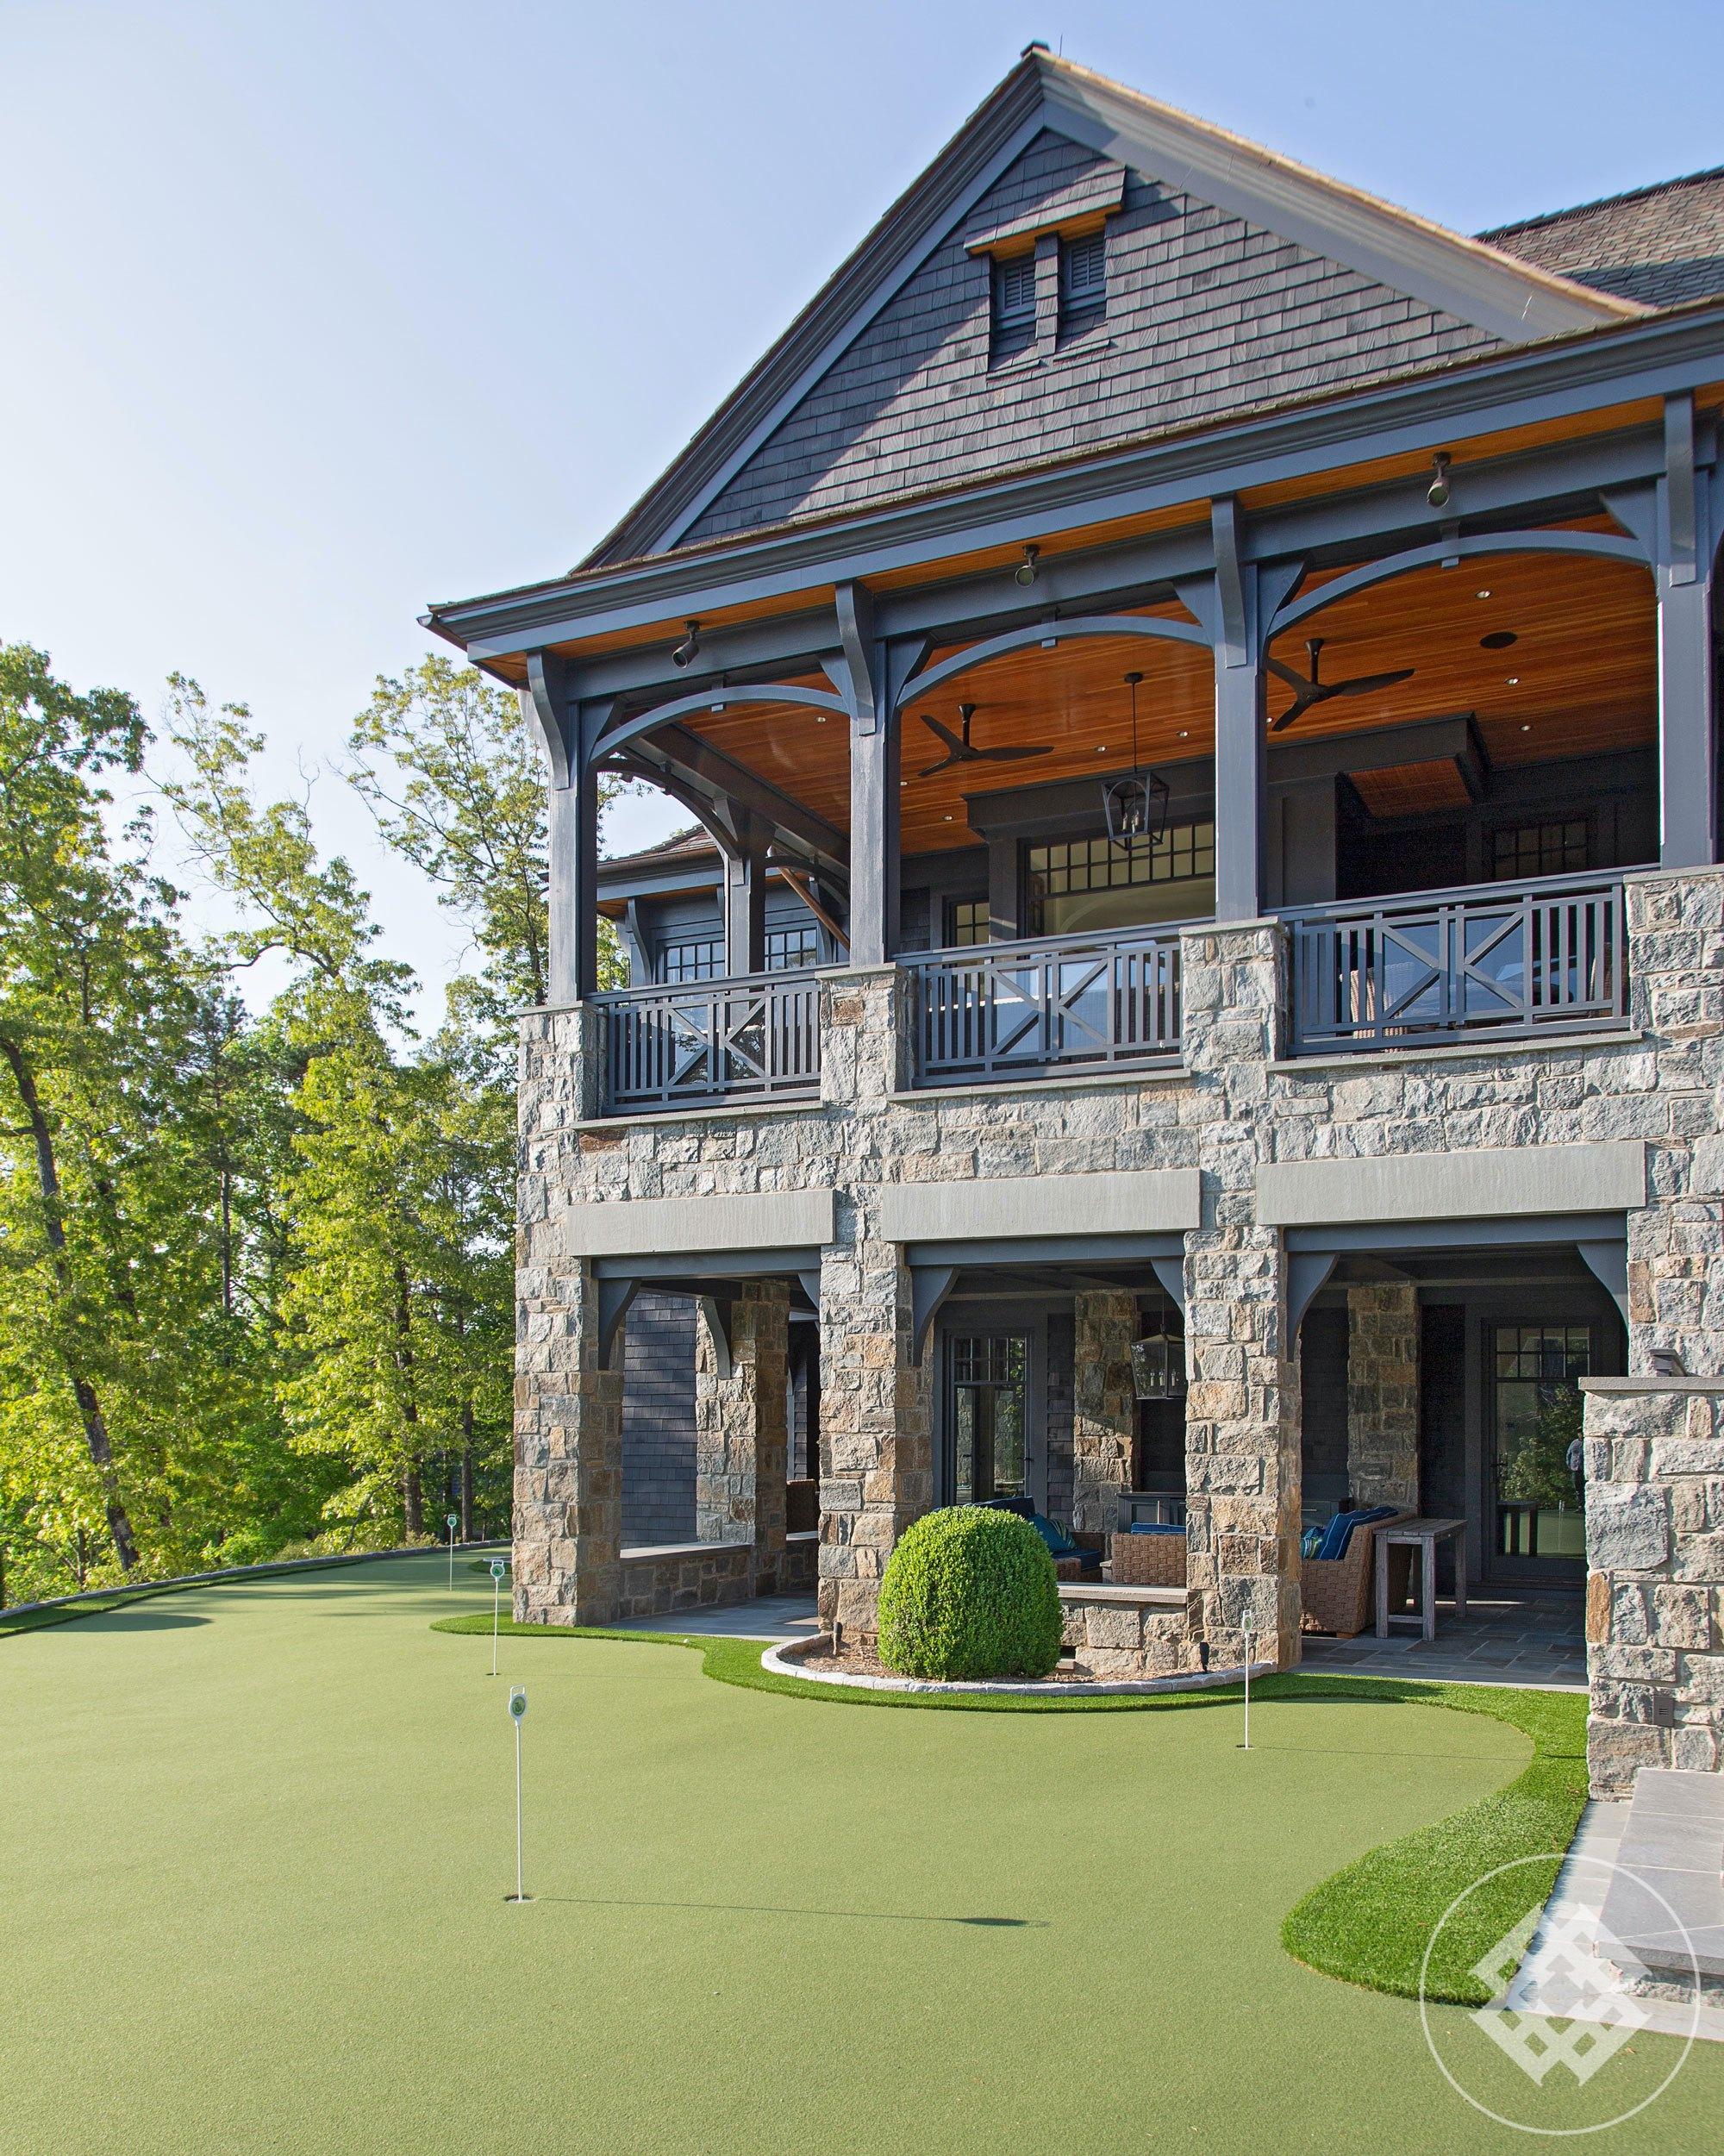 kkl-private-putting-green-at-lake-keowee-residence.jpg